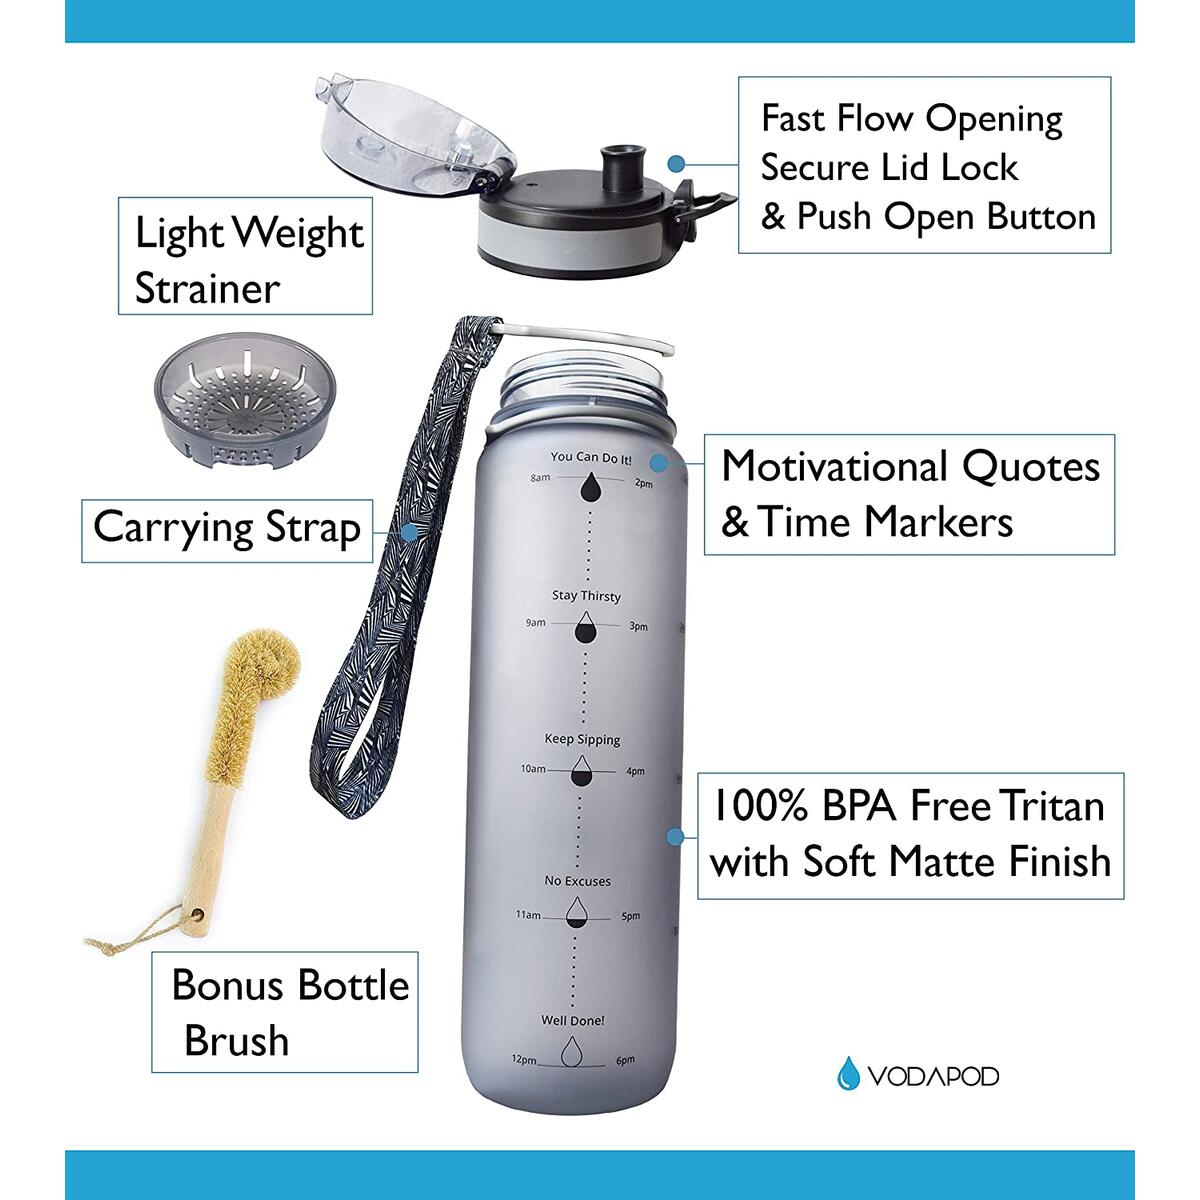 Motivational Water Bottle with Time Marker   32oz Daily Water Intake Bottle   Gym Sports Water Bottle   Fruit Infuser Screen   1 Liter BPA-Free Durable Leakproof with Eco-Friendly Brush